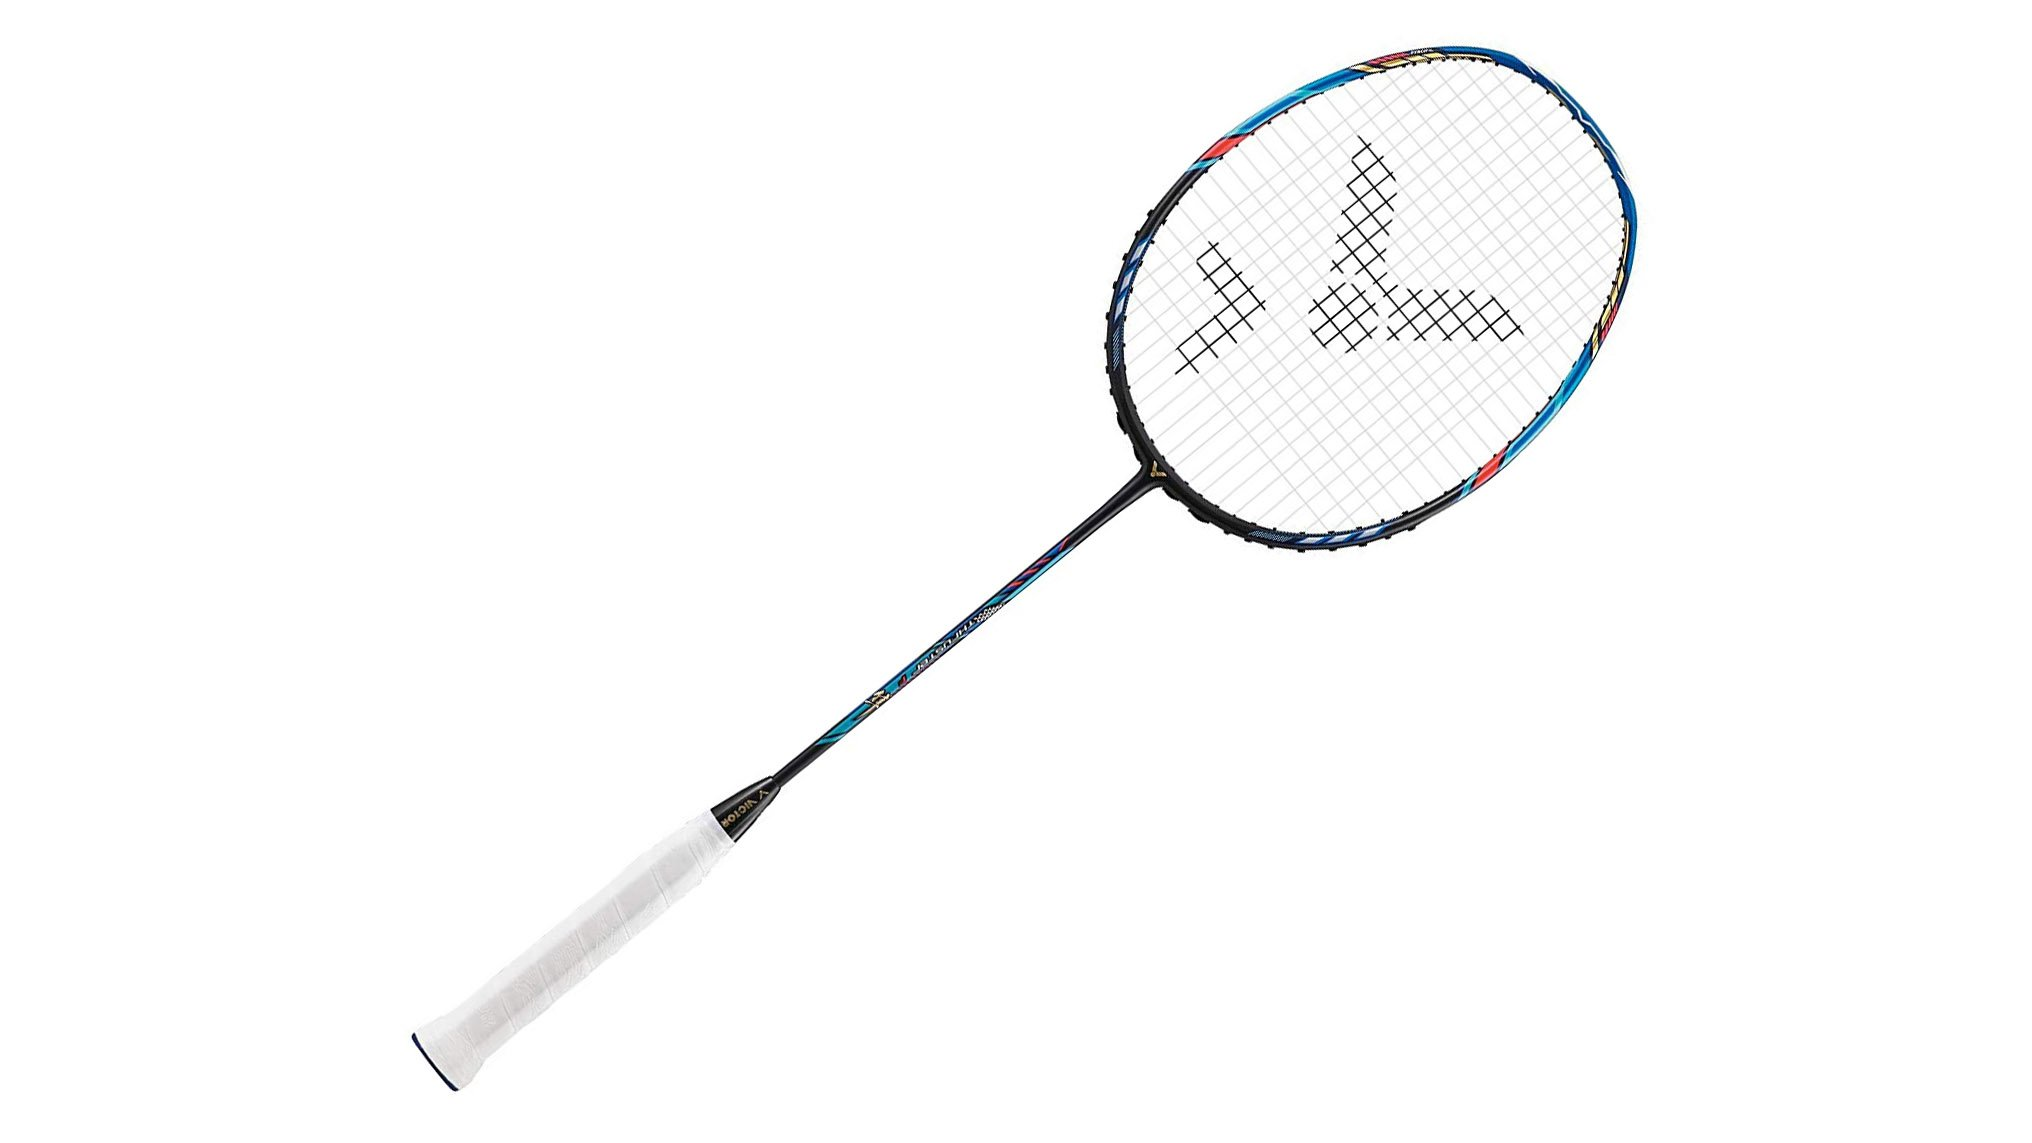 best badminton racket 2018 up your game with the perfect racket